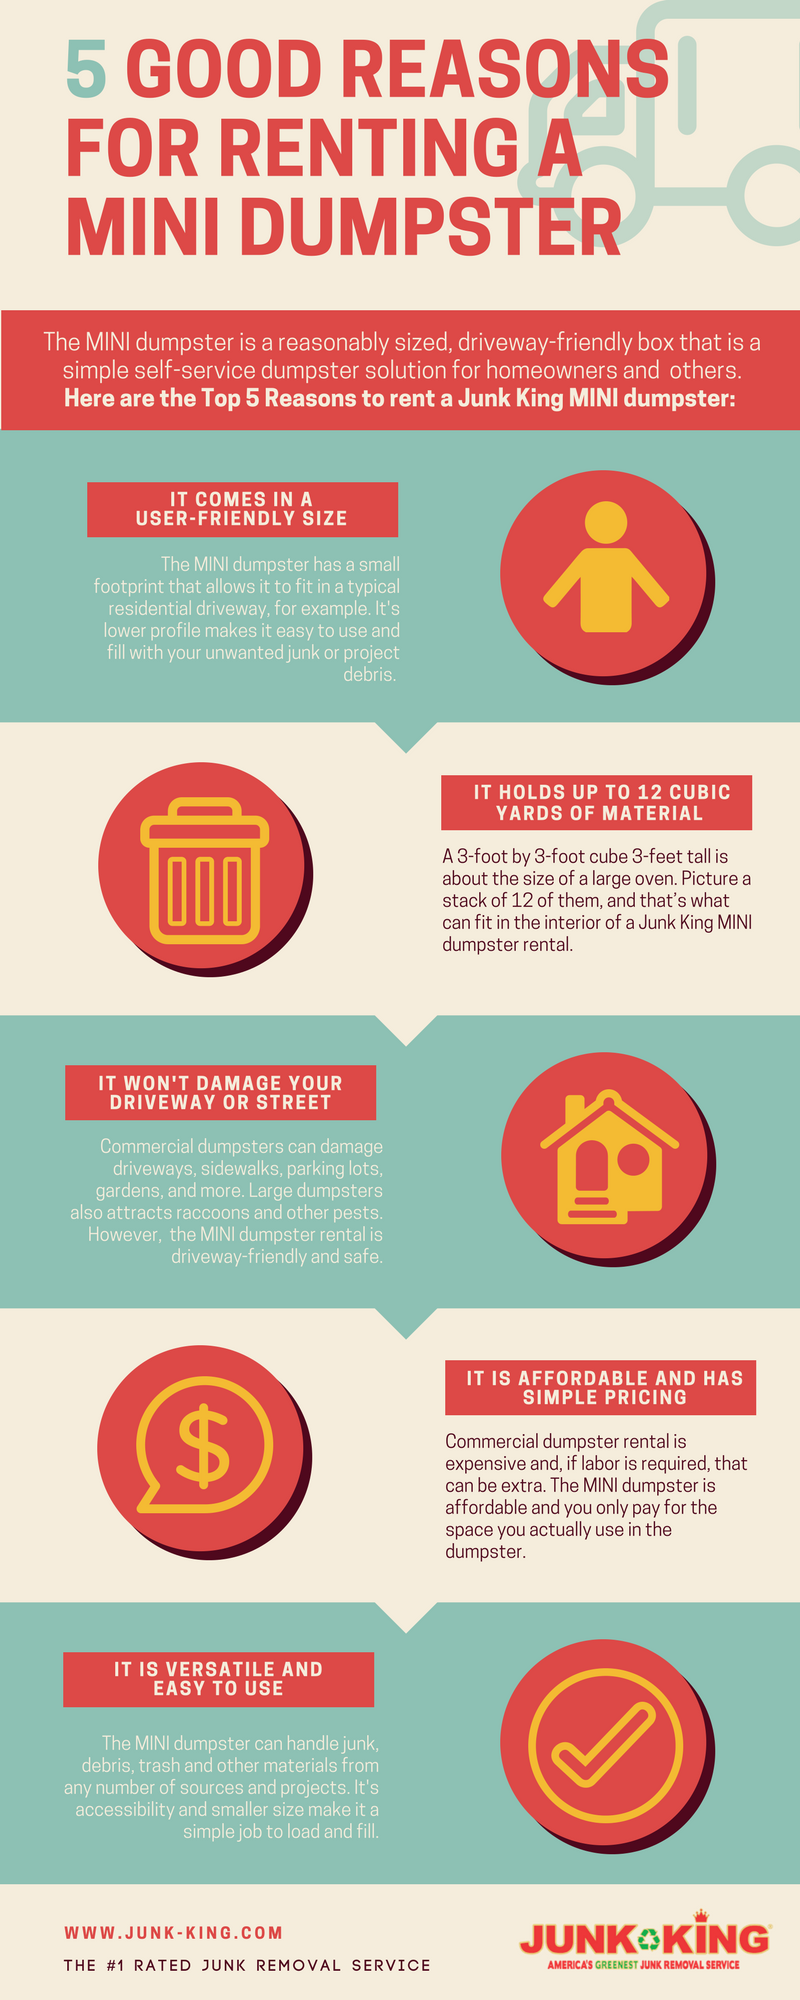 5 Reasons for renting a Junk King MINI dumpster